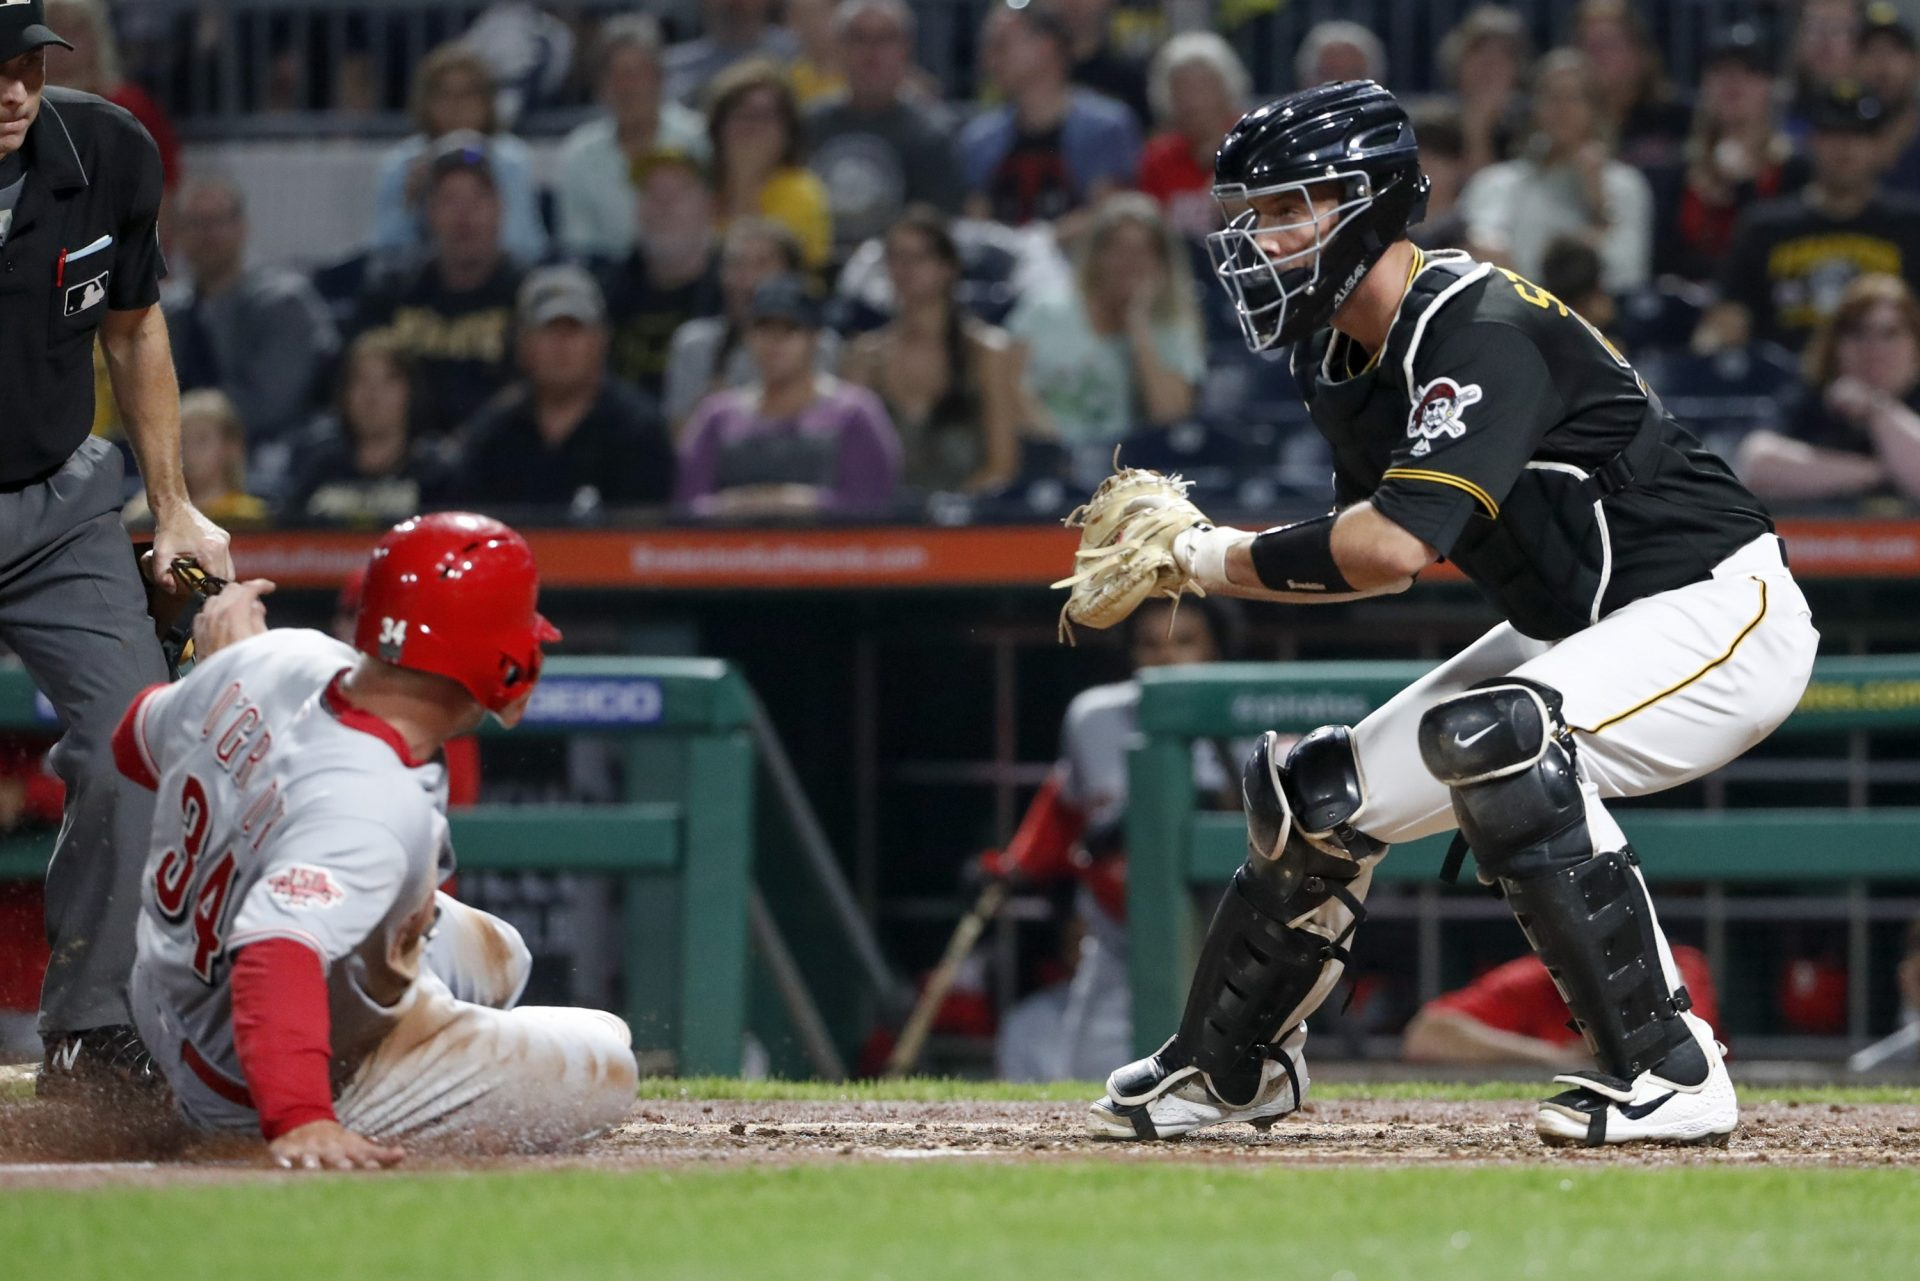 Pittsburgh Pirates catcher Jacob Stallings, right, gets the force out on Cincinnati Reds' Brian O'Grady at home on a bases loaded ground ball by Aristides Aquino in the third inning of a baseball game, Saturday, Sept. 28, 2019, in Pittsburgh.